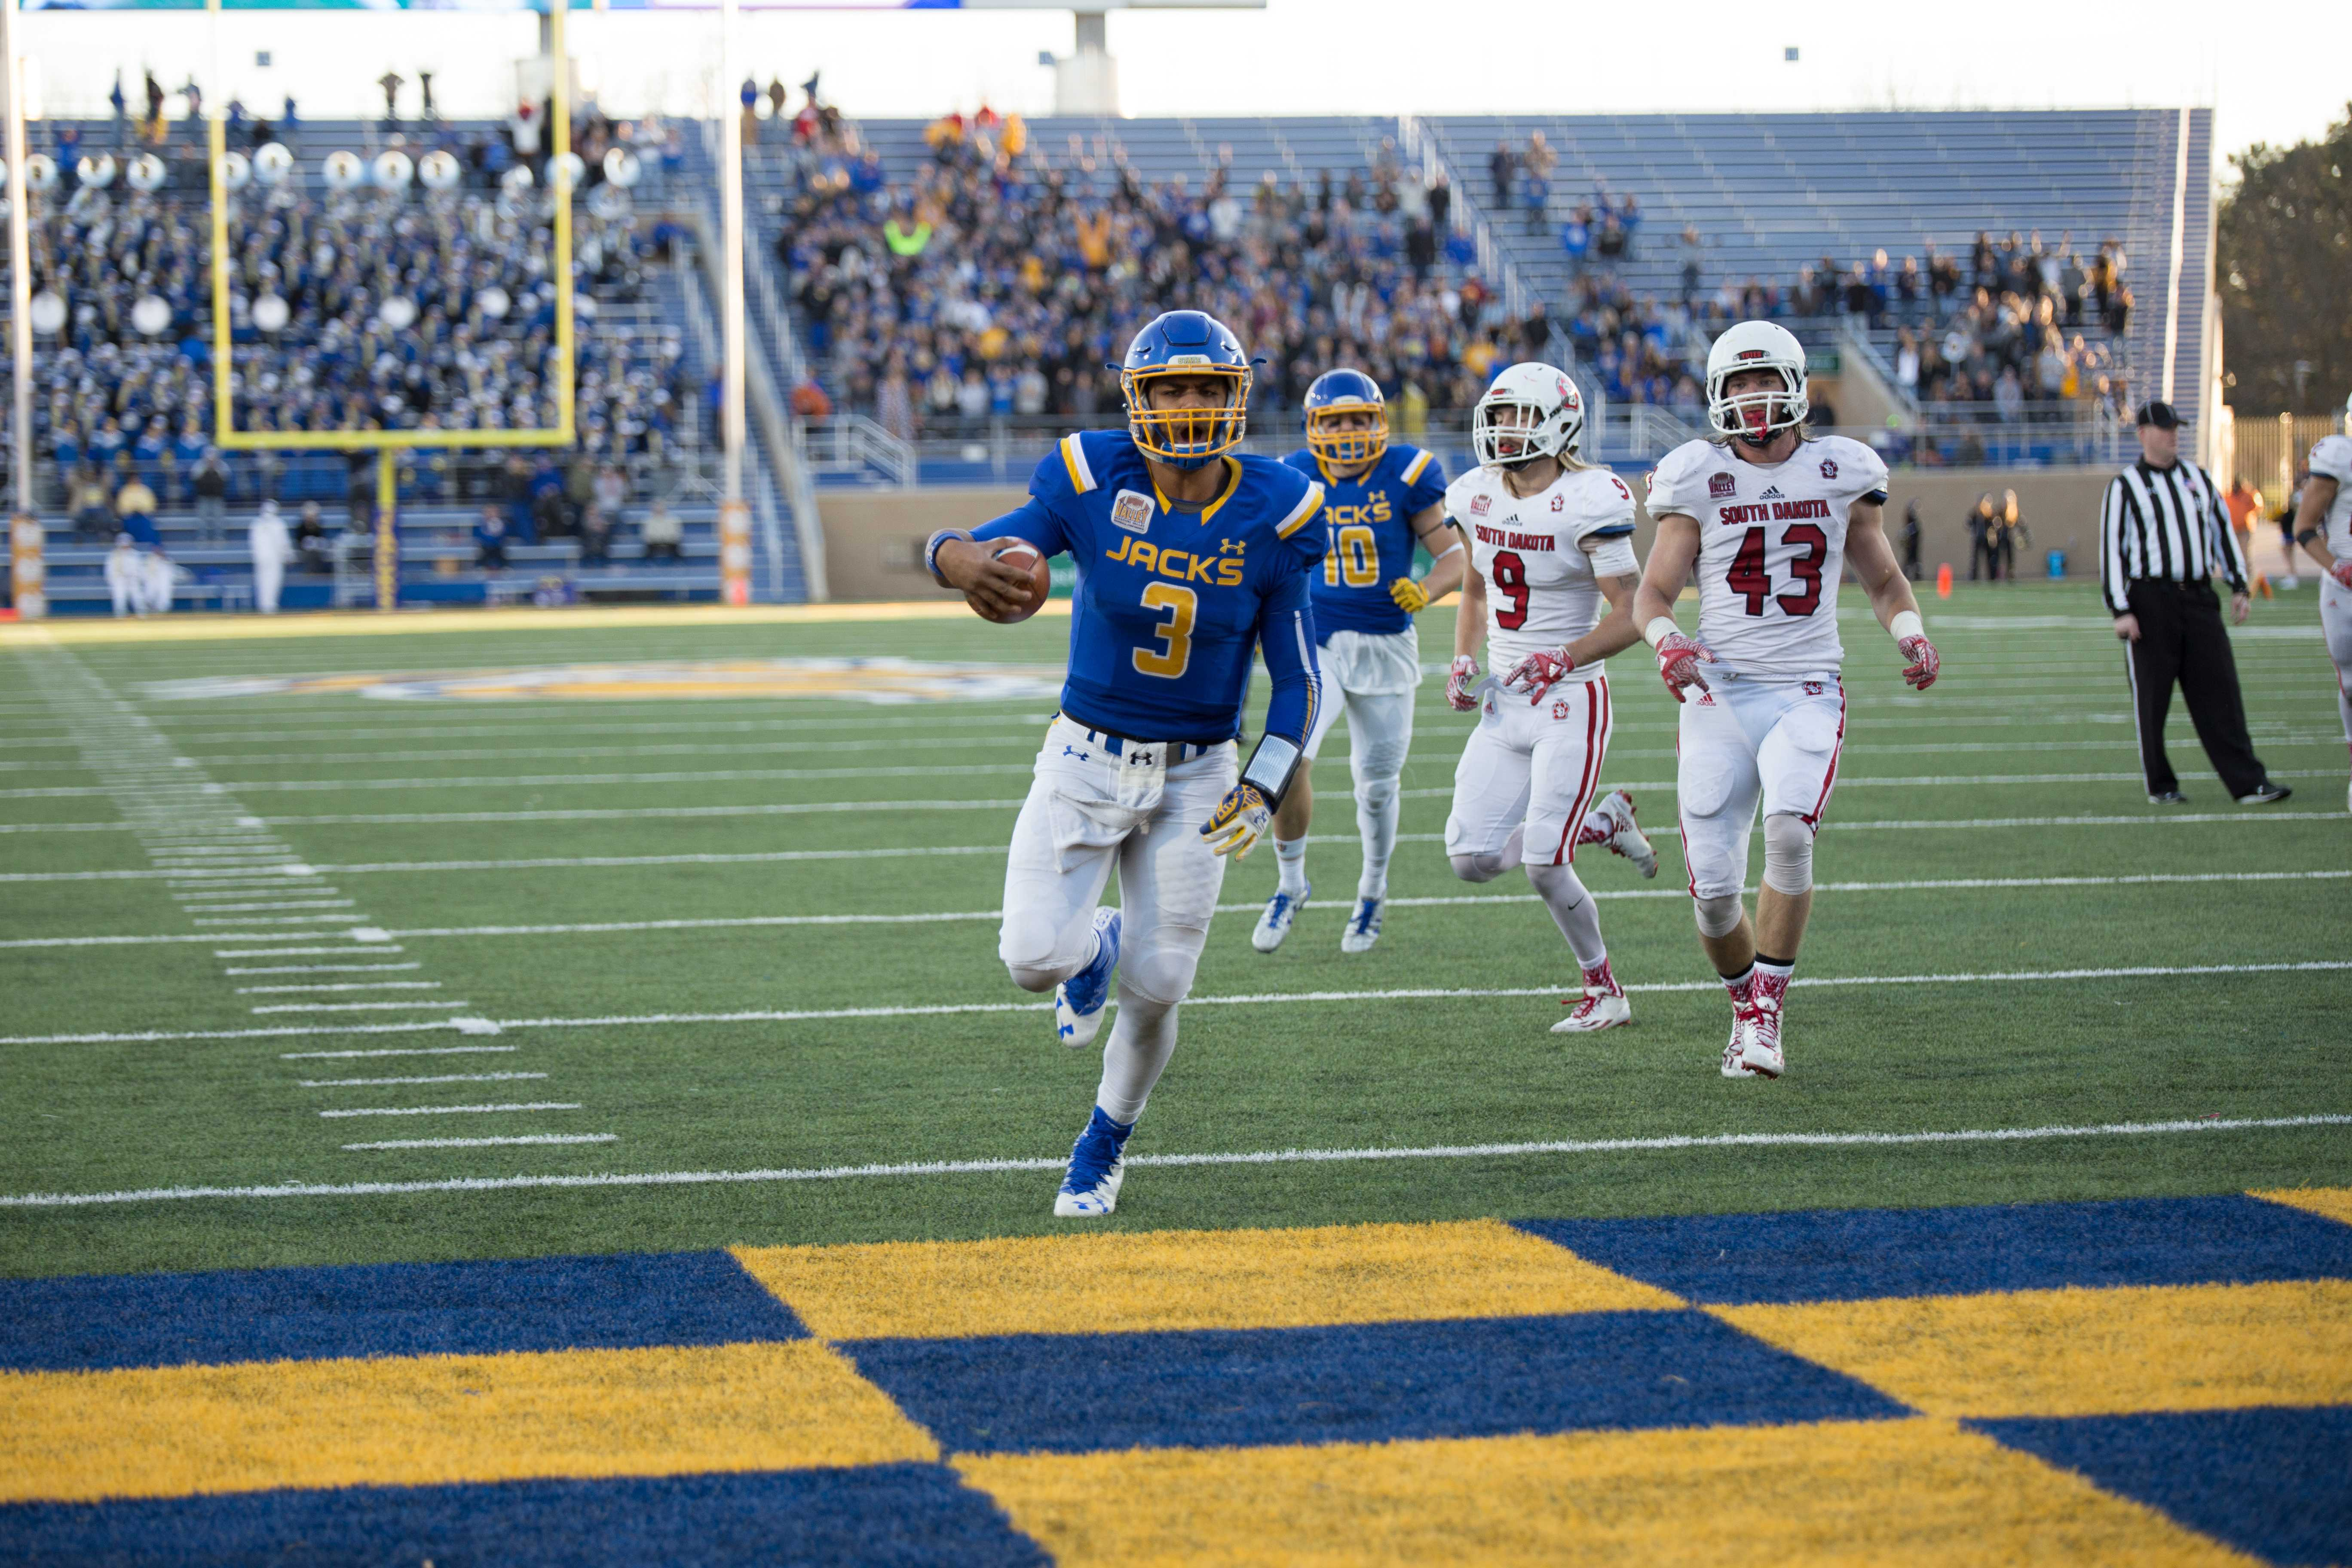 Actions at the football game between South Dakota State and the University of South Dakota. SDSU won 28-21 over the Coyotes.